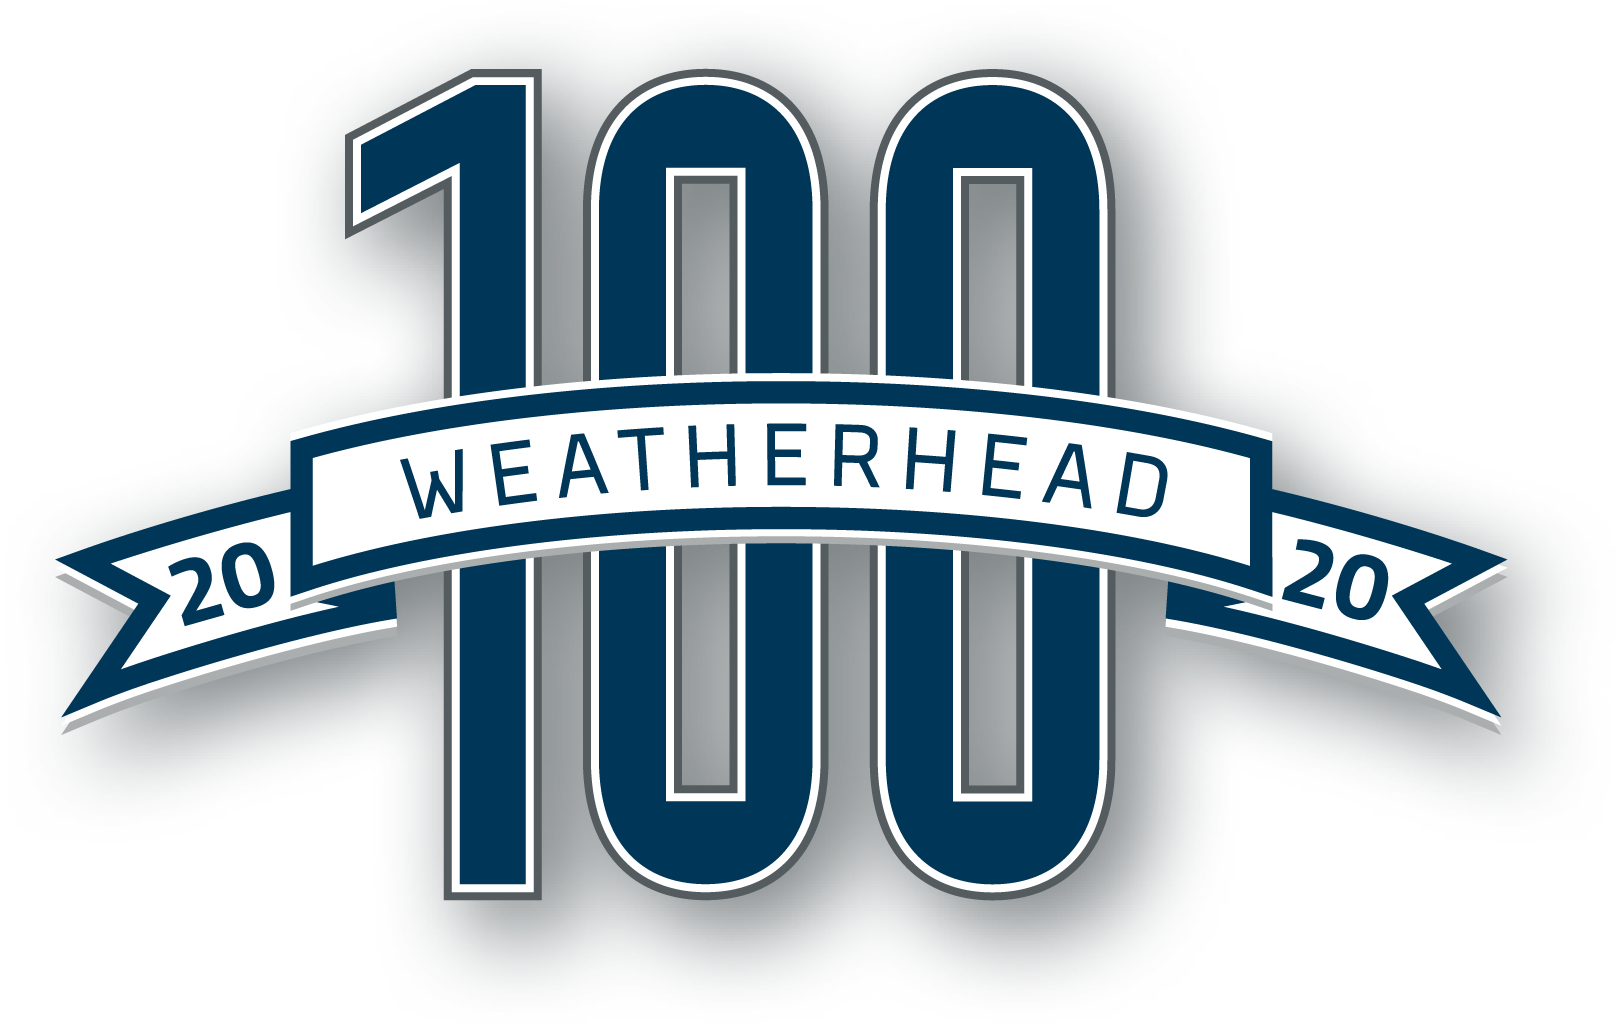 Weatherhead School of Management Cancels 2020 Weatherhead 100 Gala, Sets Eyes on 2021